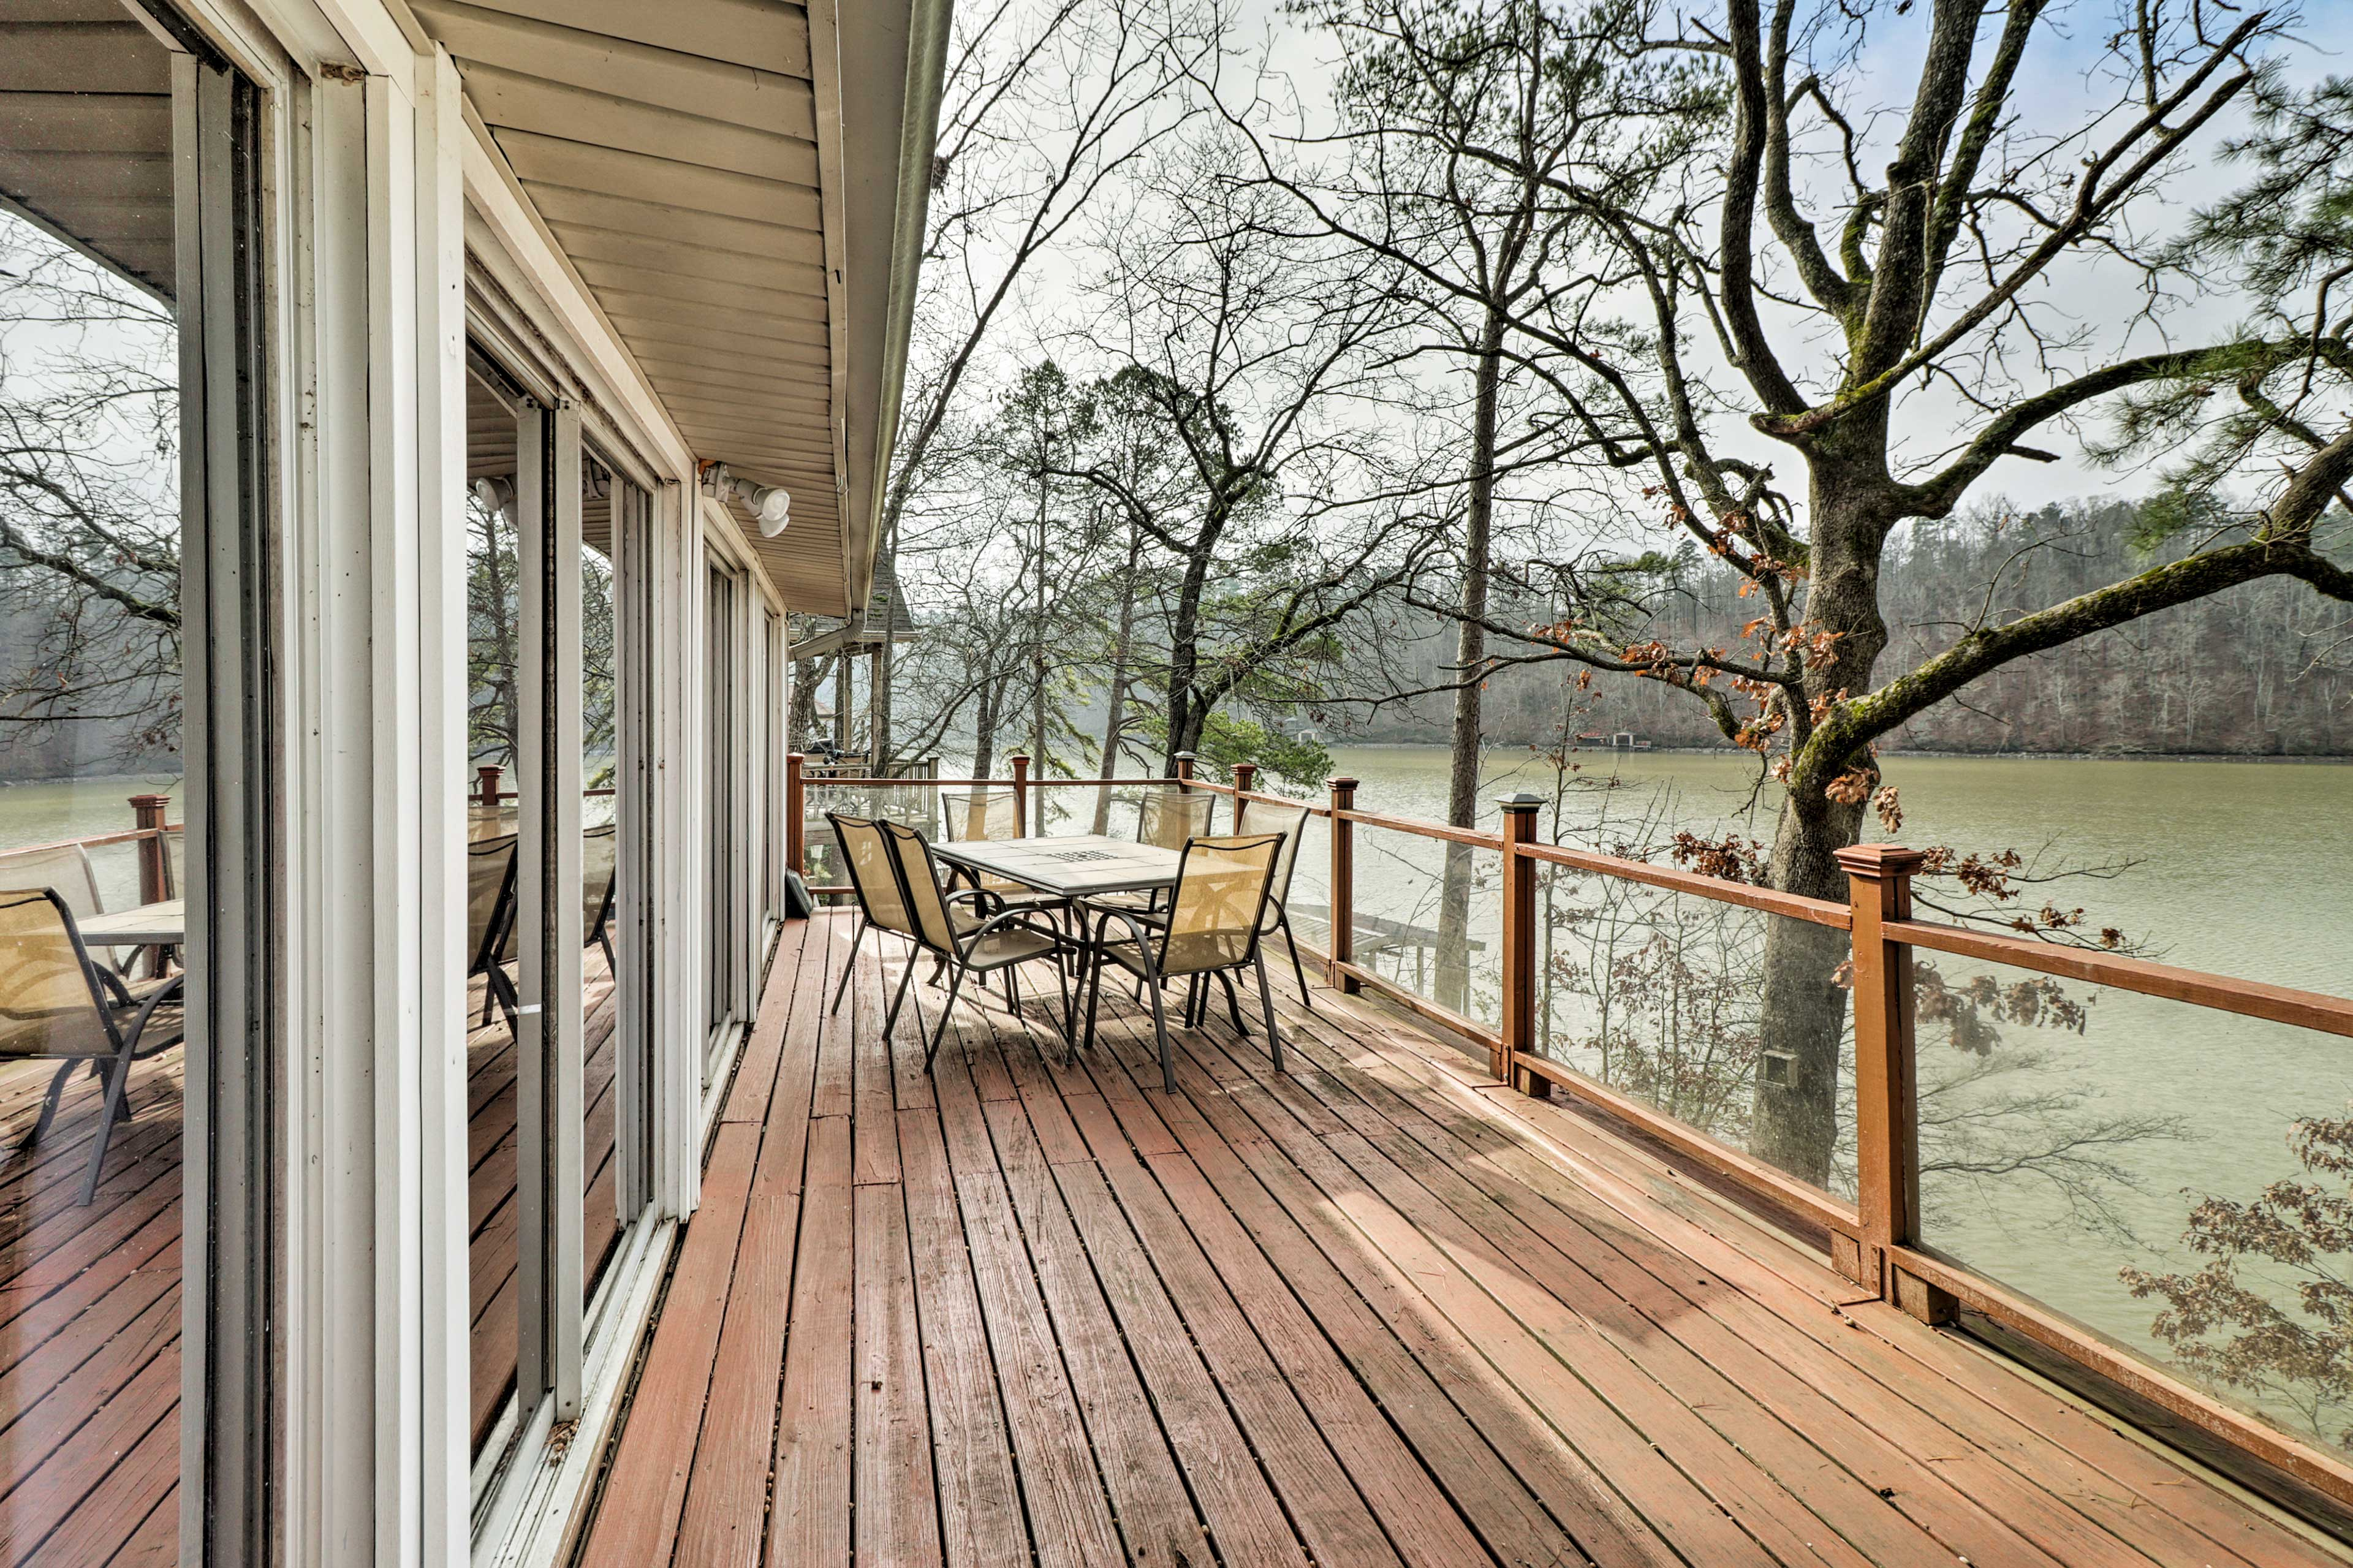 Gather your friends at this spacious property for a cookout on the deck.